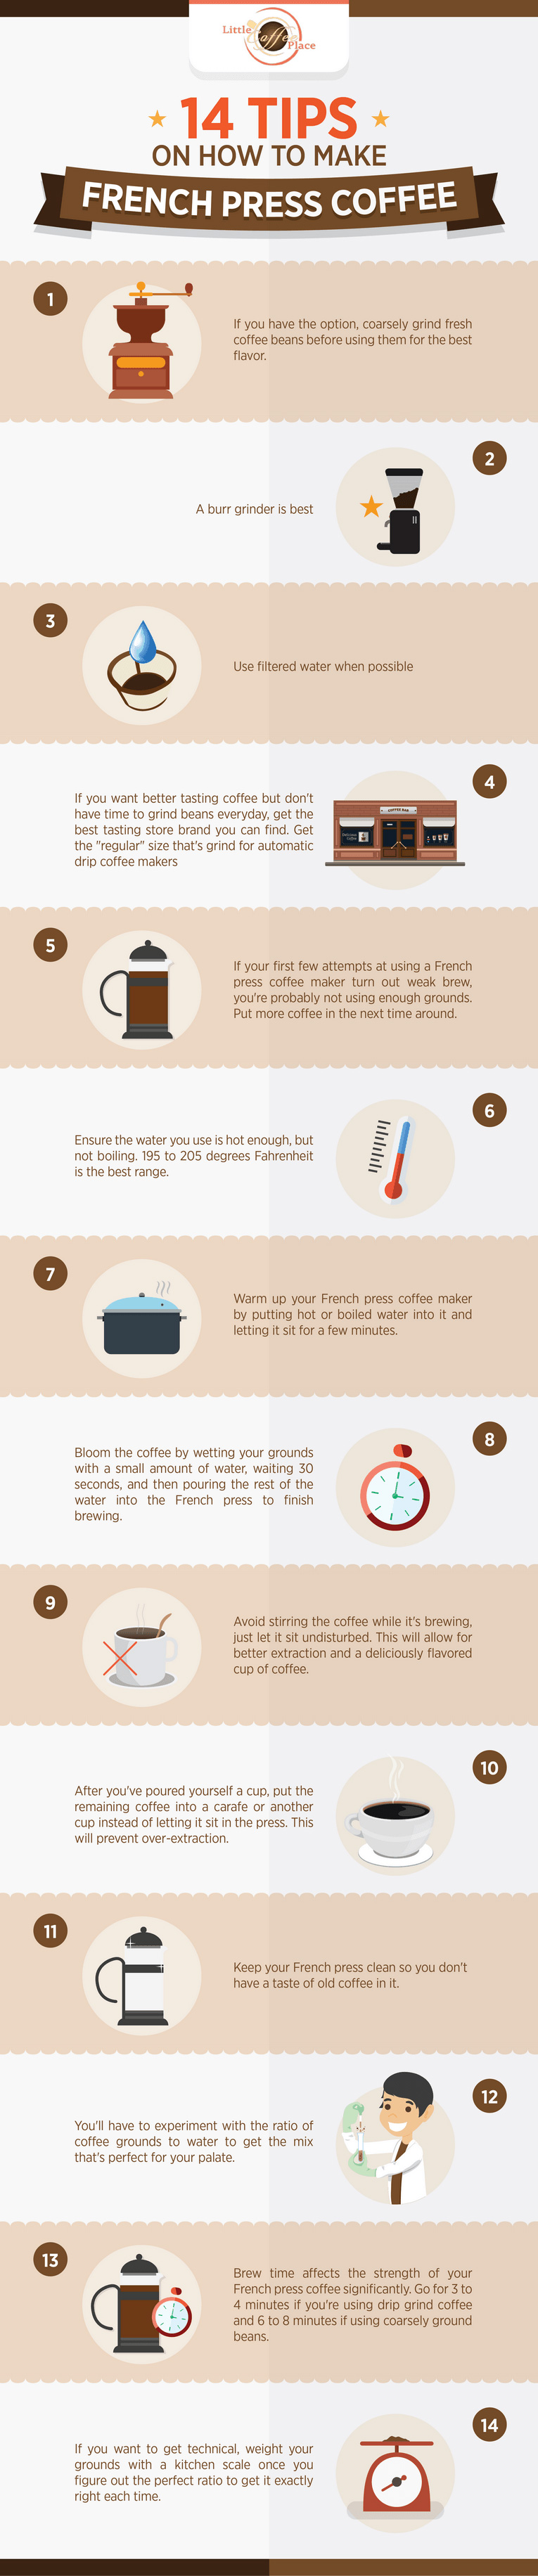 Tips-on-How-to-Make-French-Press-Coffee-Infographic